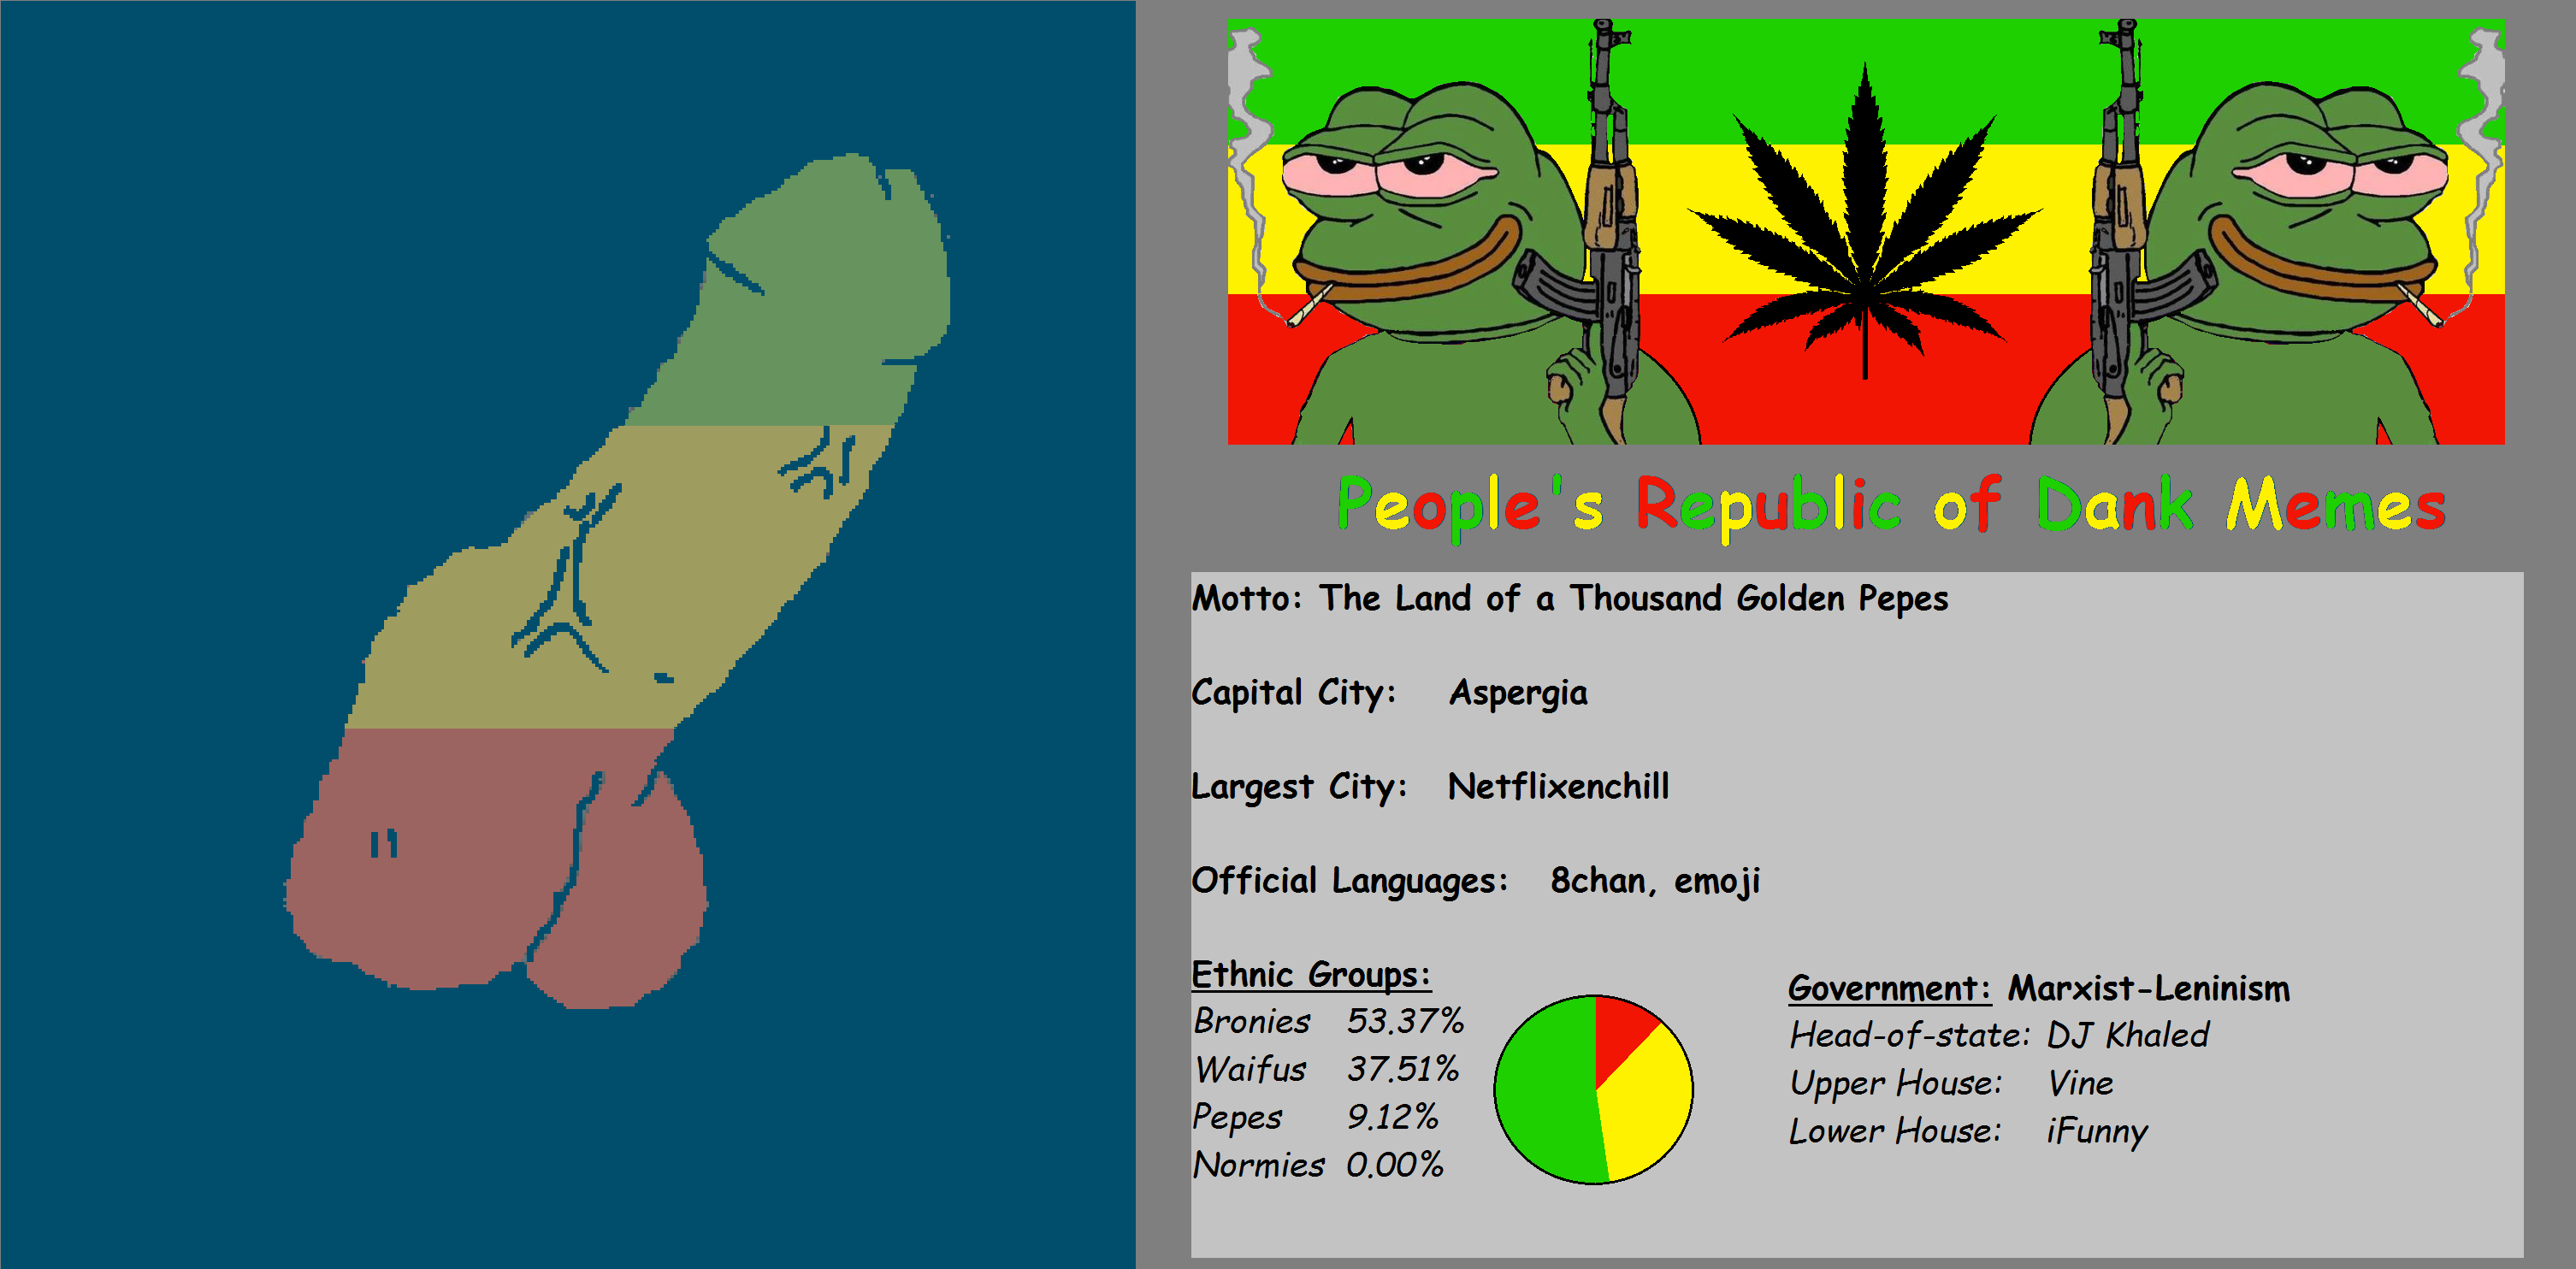 the_people_s_republic_of_dank_memes_by_deviantsock d9sjjbe the people's republic of dank memes by deviantsock on deviantart